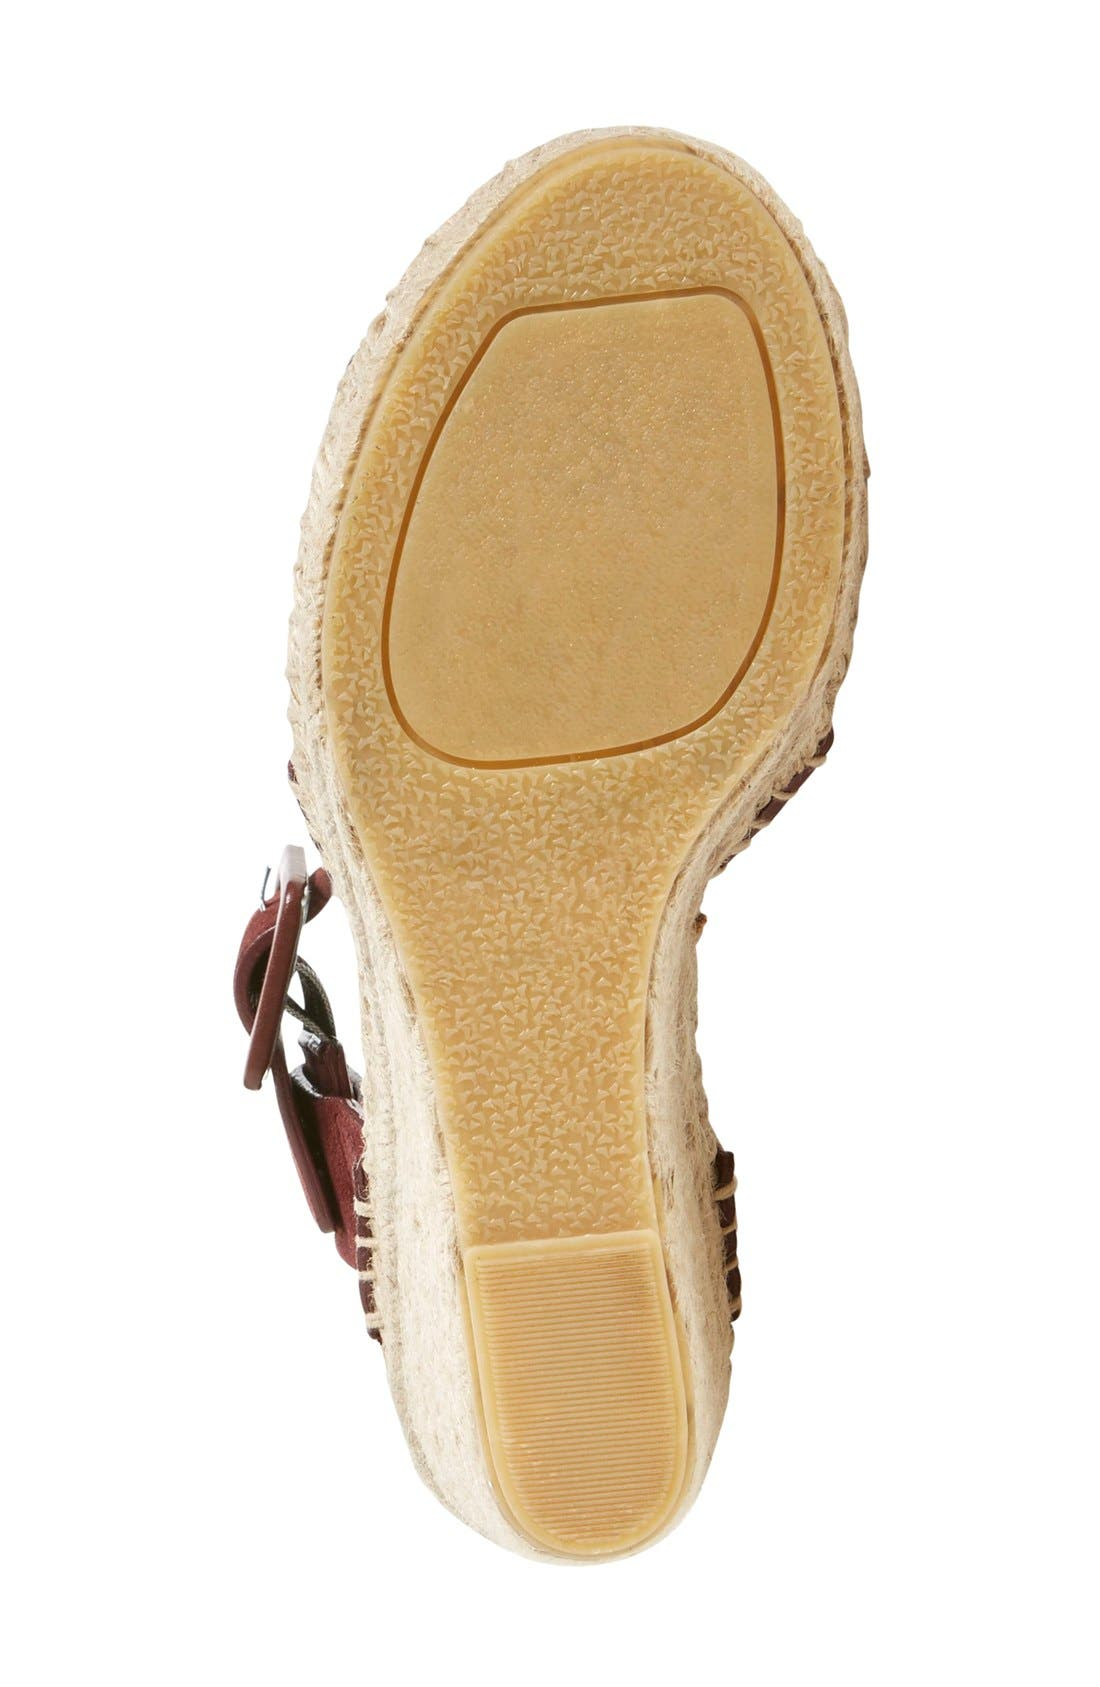 'Stefania' Espadrille Wedge Sandal,                             Alternate thumbnail 4, color,                             200